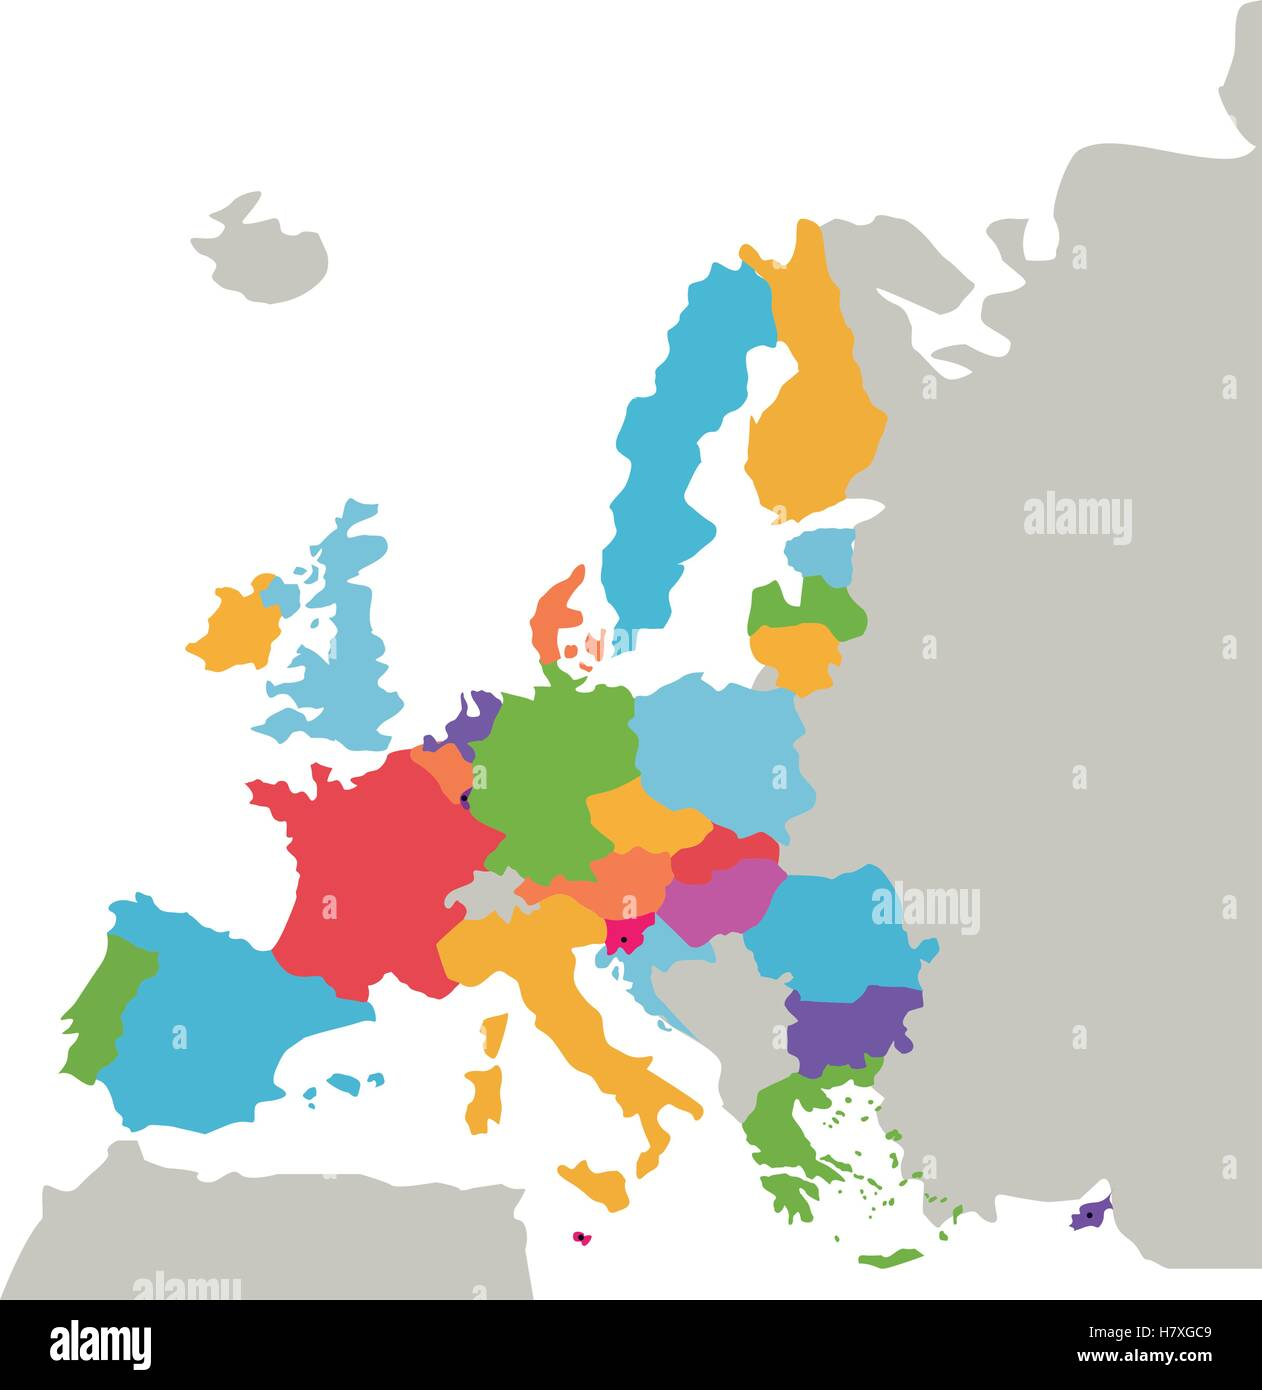 European union map icon  Europe eu country national and politics     European union map icon  Europe eu country national and politics theme   Isolated design  Vector illustration